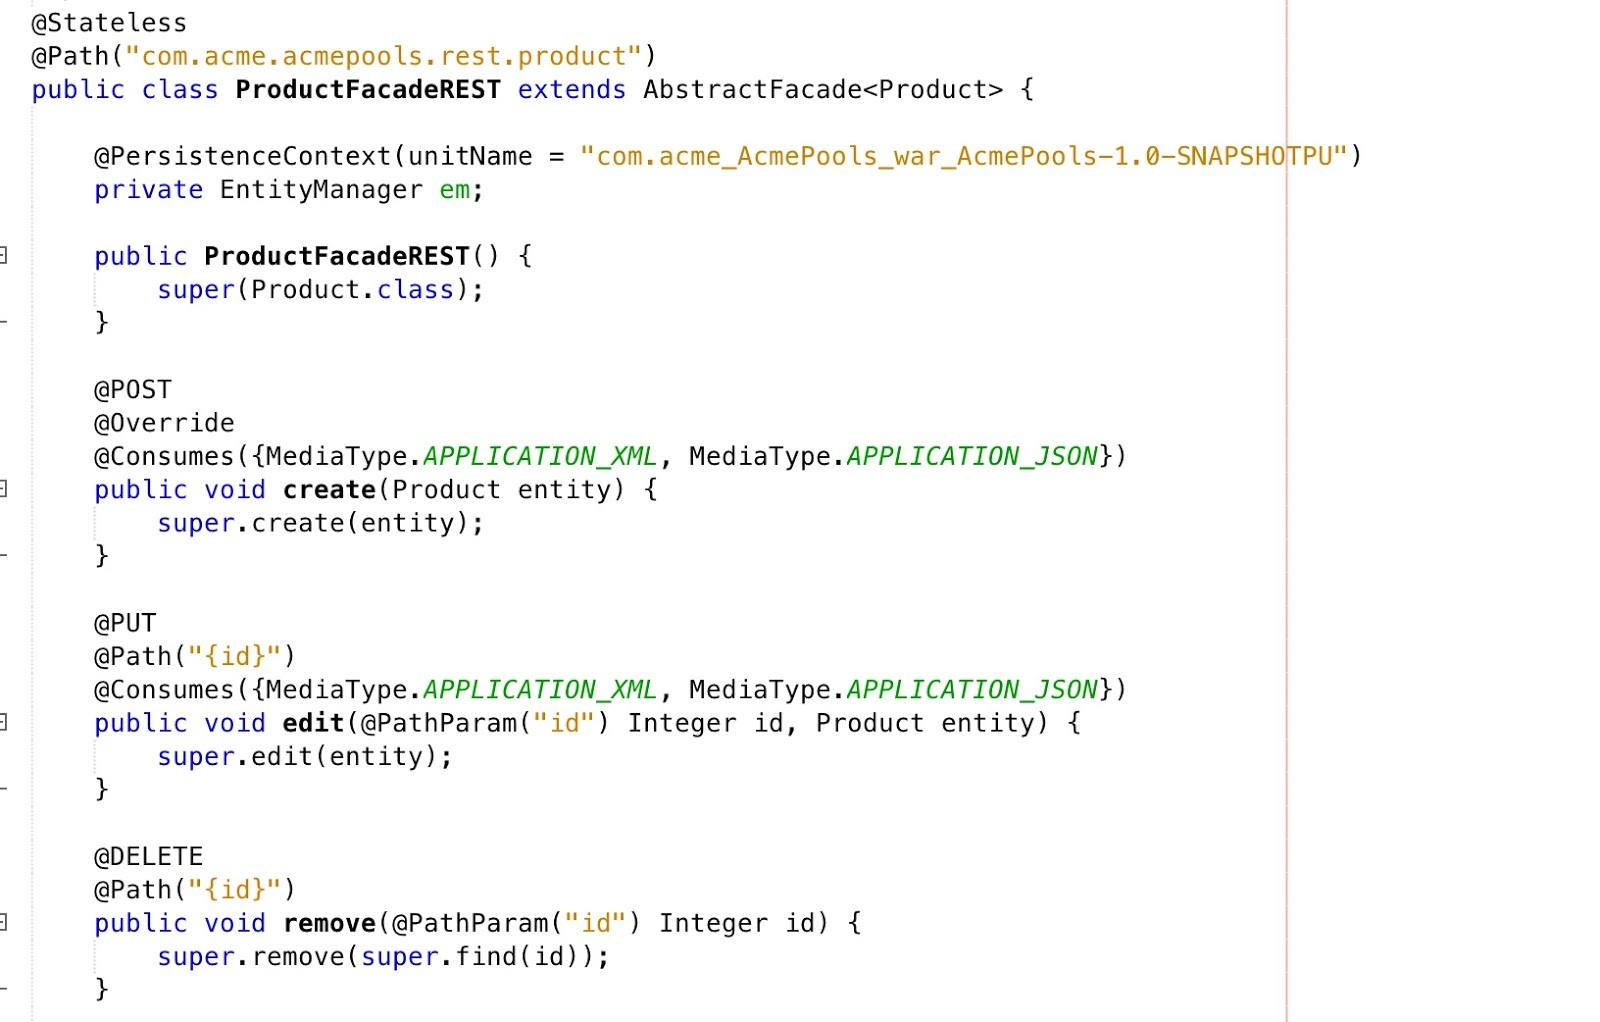 NetBeans Java EE Tip #3: RESTful Web Services from Database